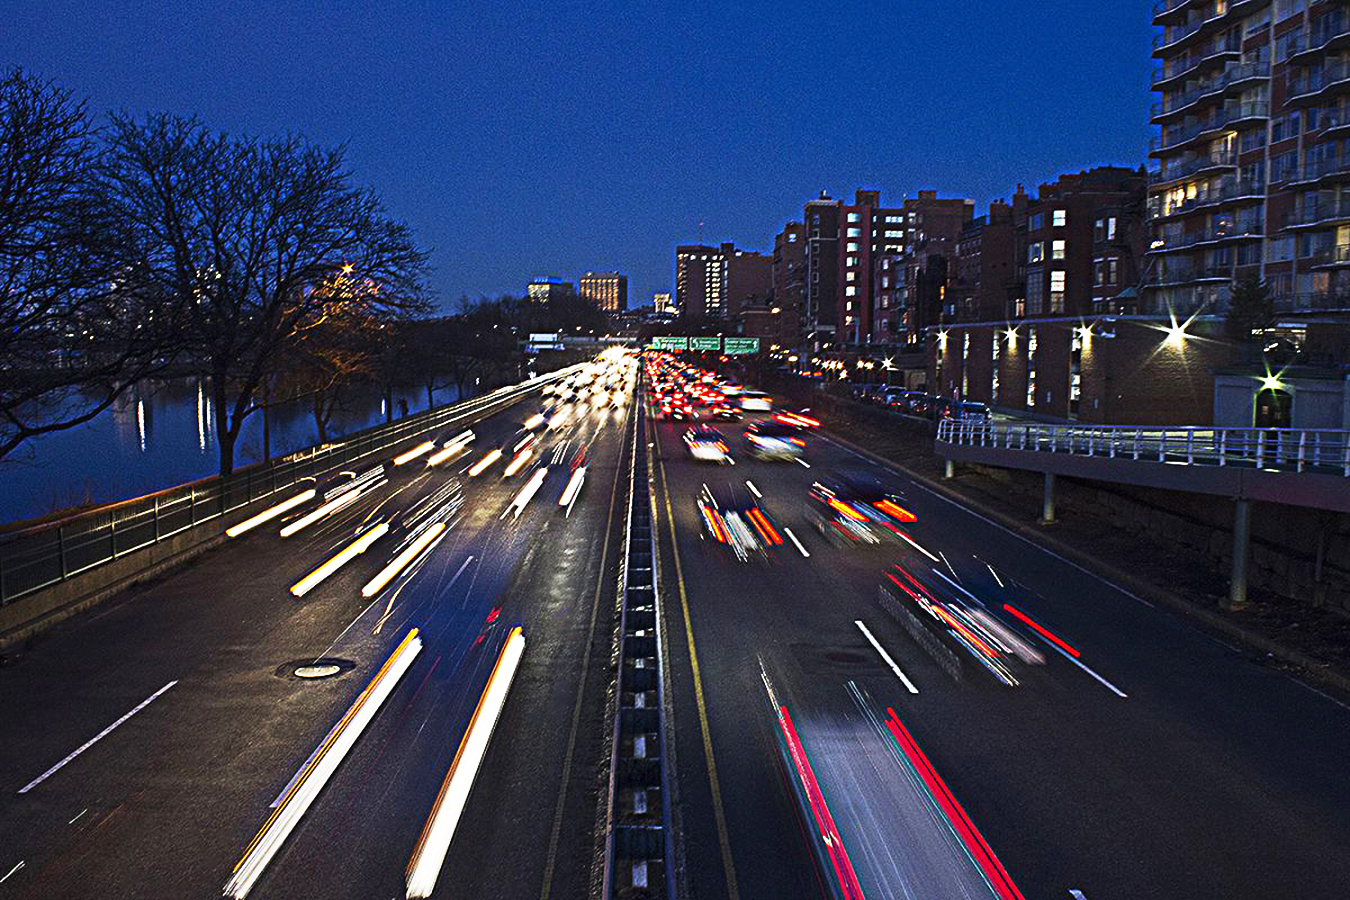 Tony_Ward_Studio_photo_David_Pang_Boston_cars-car-evening_rush_hour